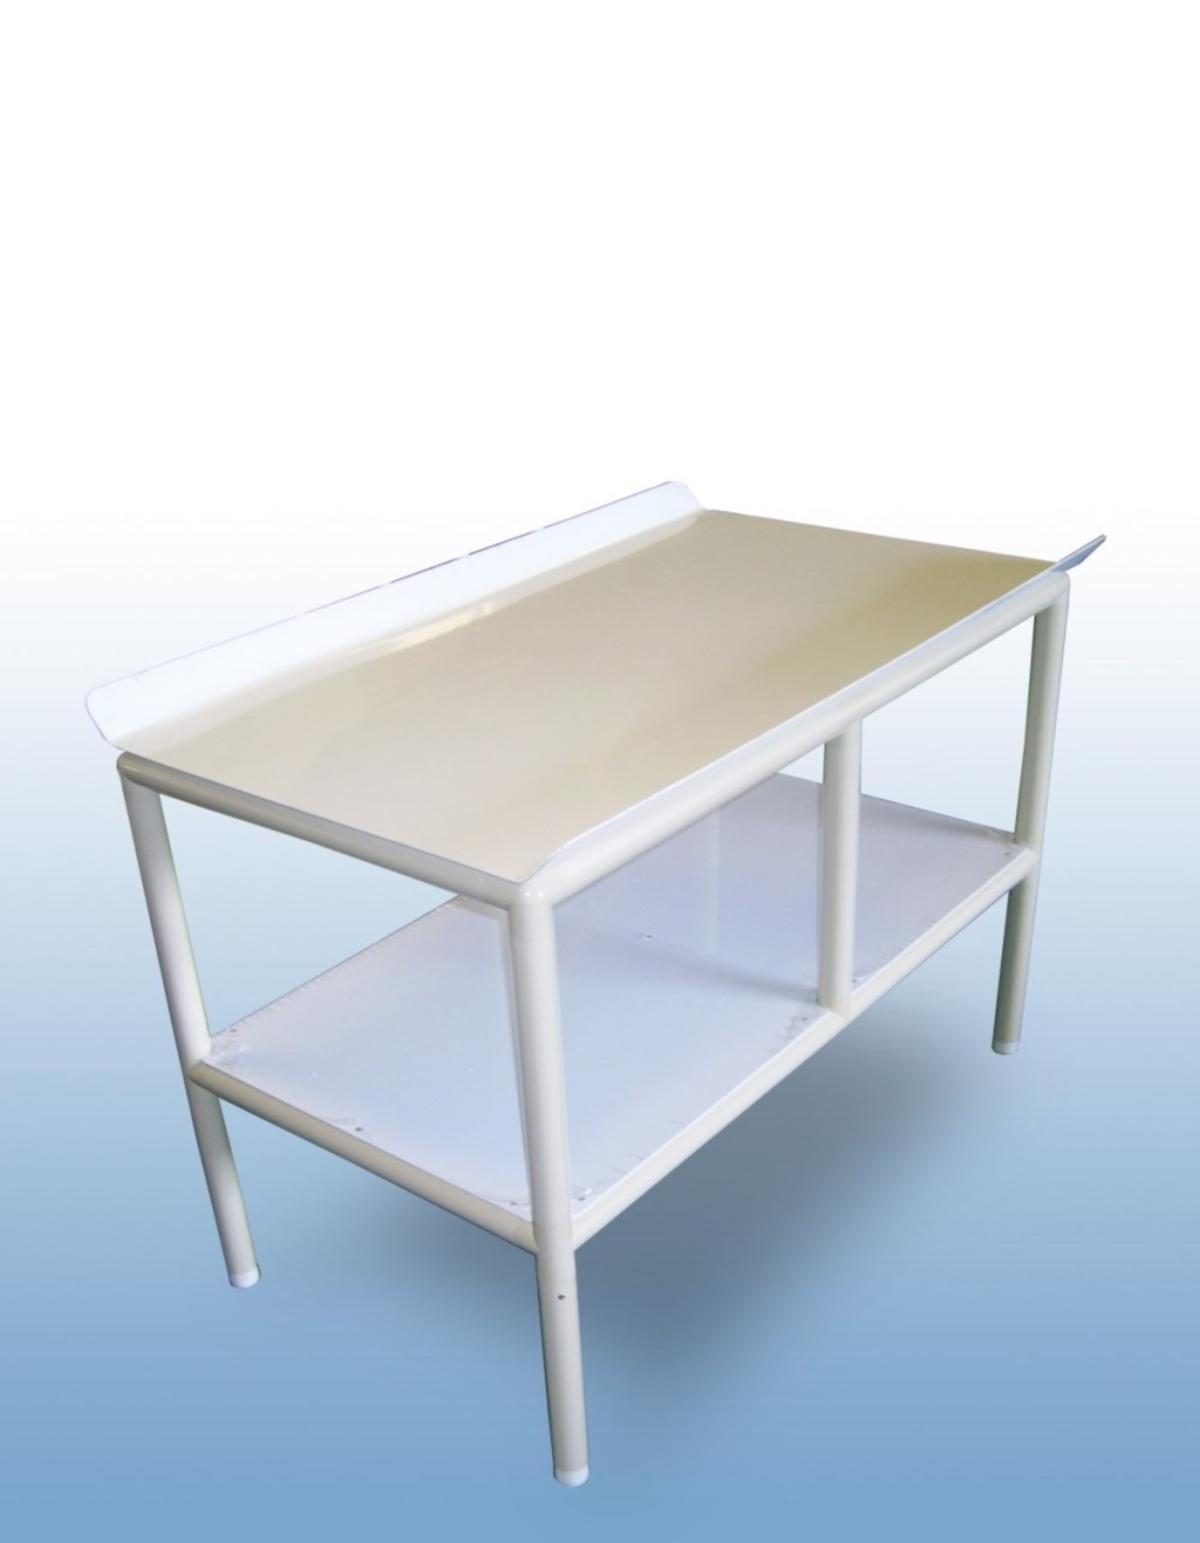 Get Static Laundry Folding Table Laundry Trolleys